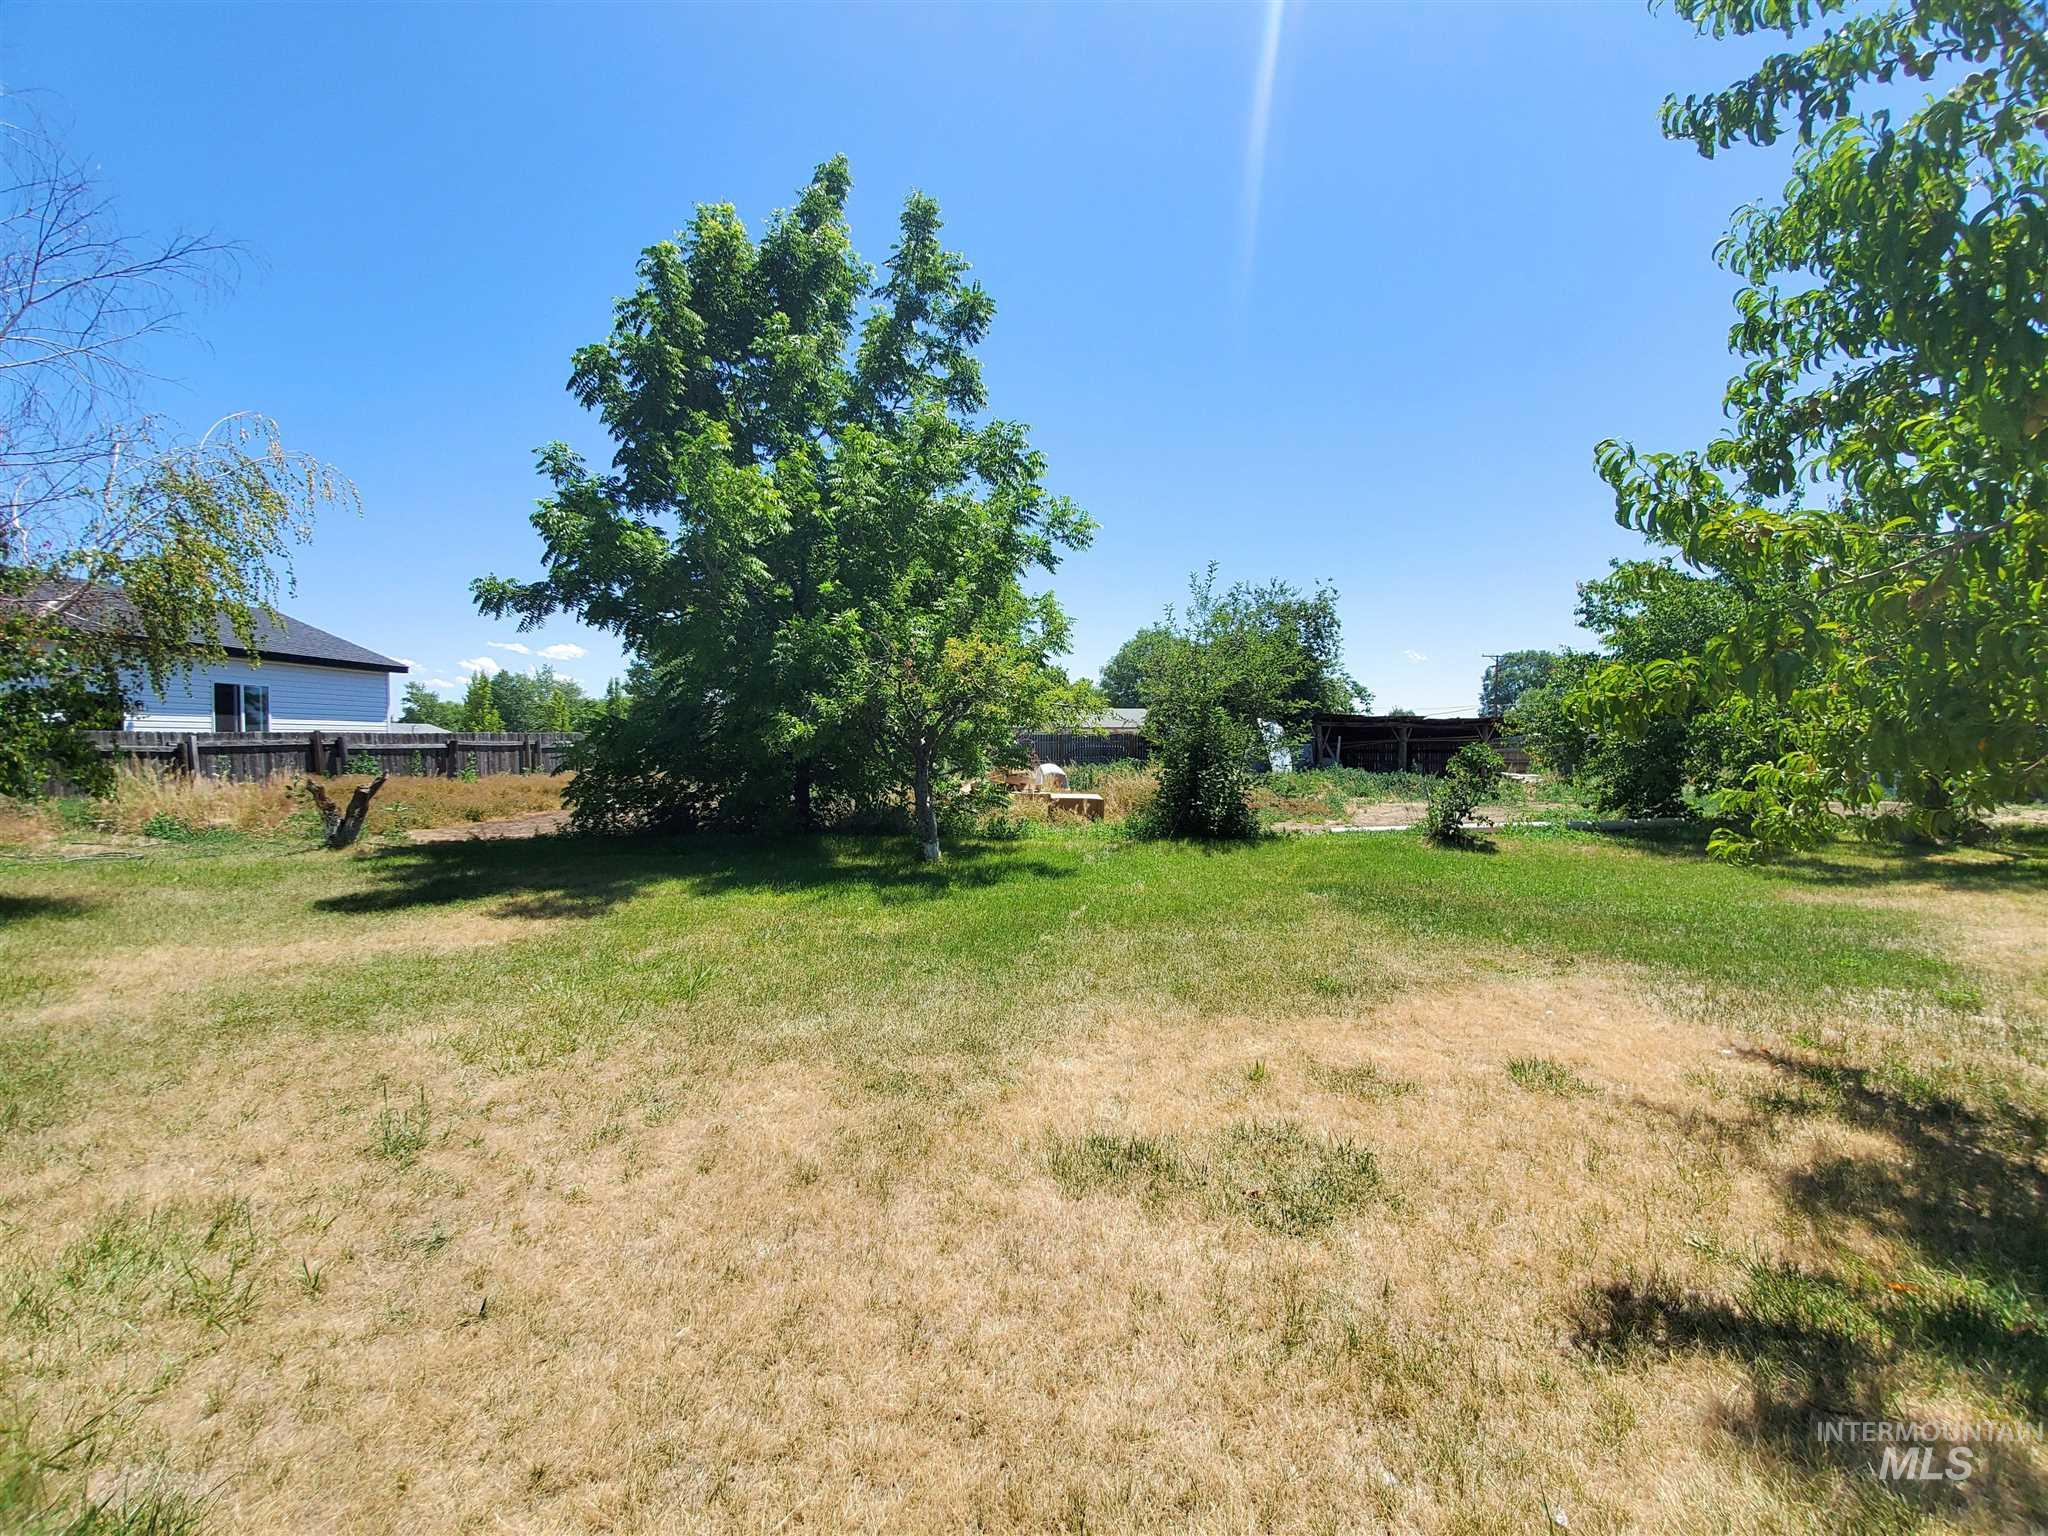 TBD 19TH St, Heyburn, Idaho 83336, Land For Sale, Price $35,000, 98773734